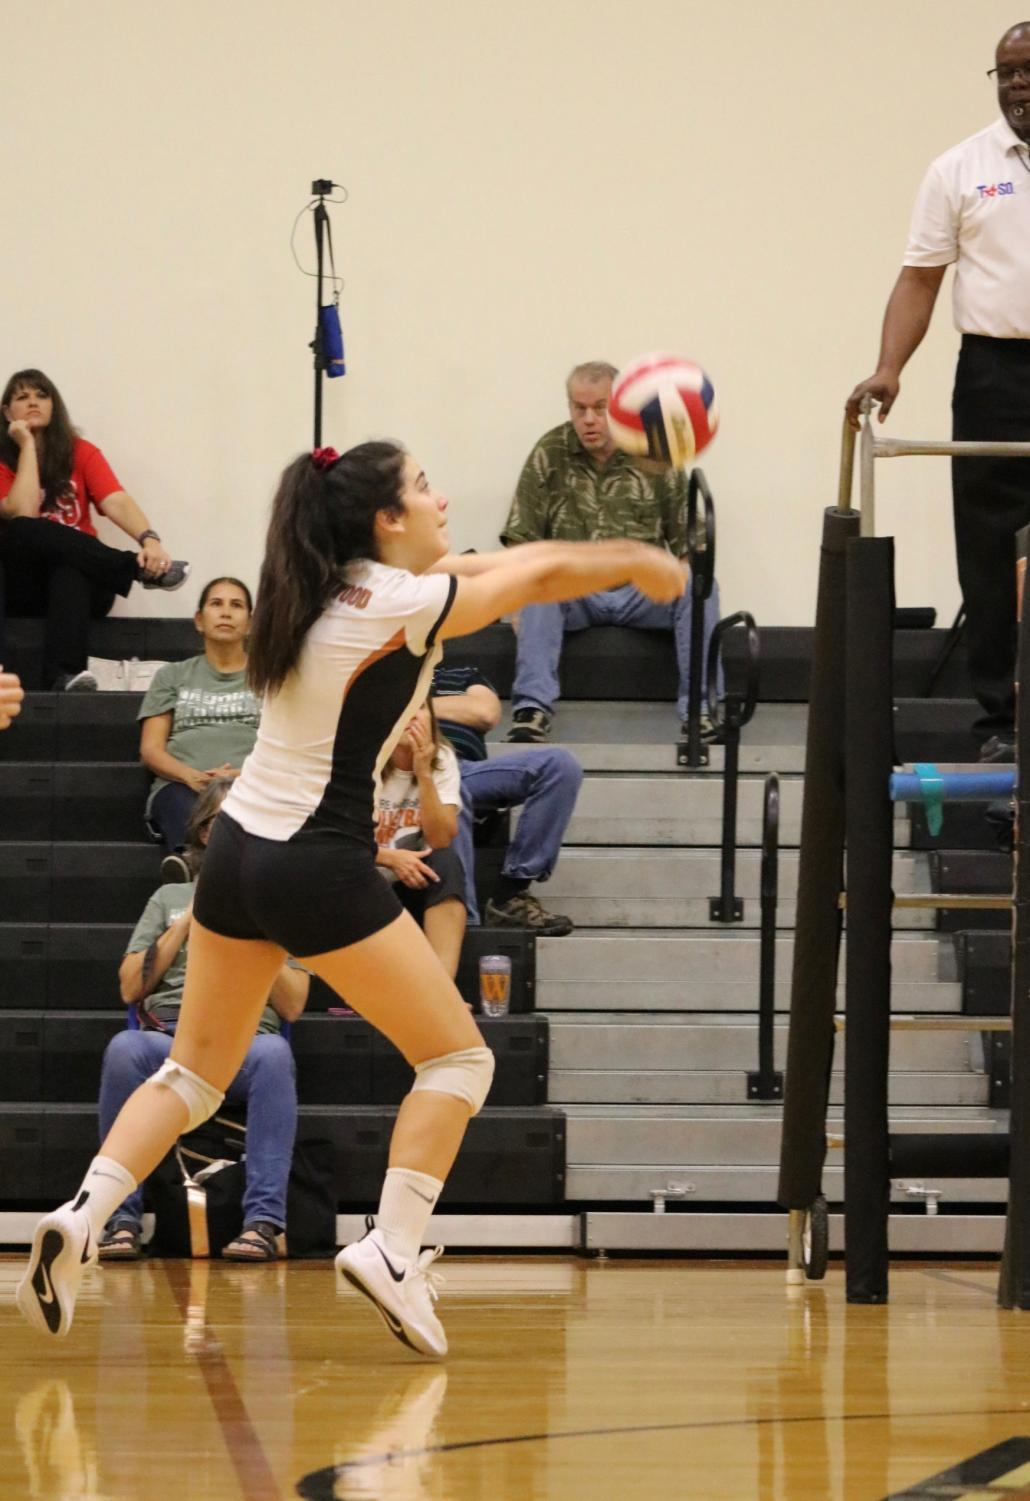 Isabel+Garcia+%2722+prevents+the+other+team+from+scoring+by+hitting+the+ball+back+over+the+net.